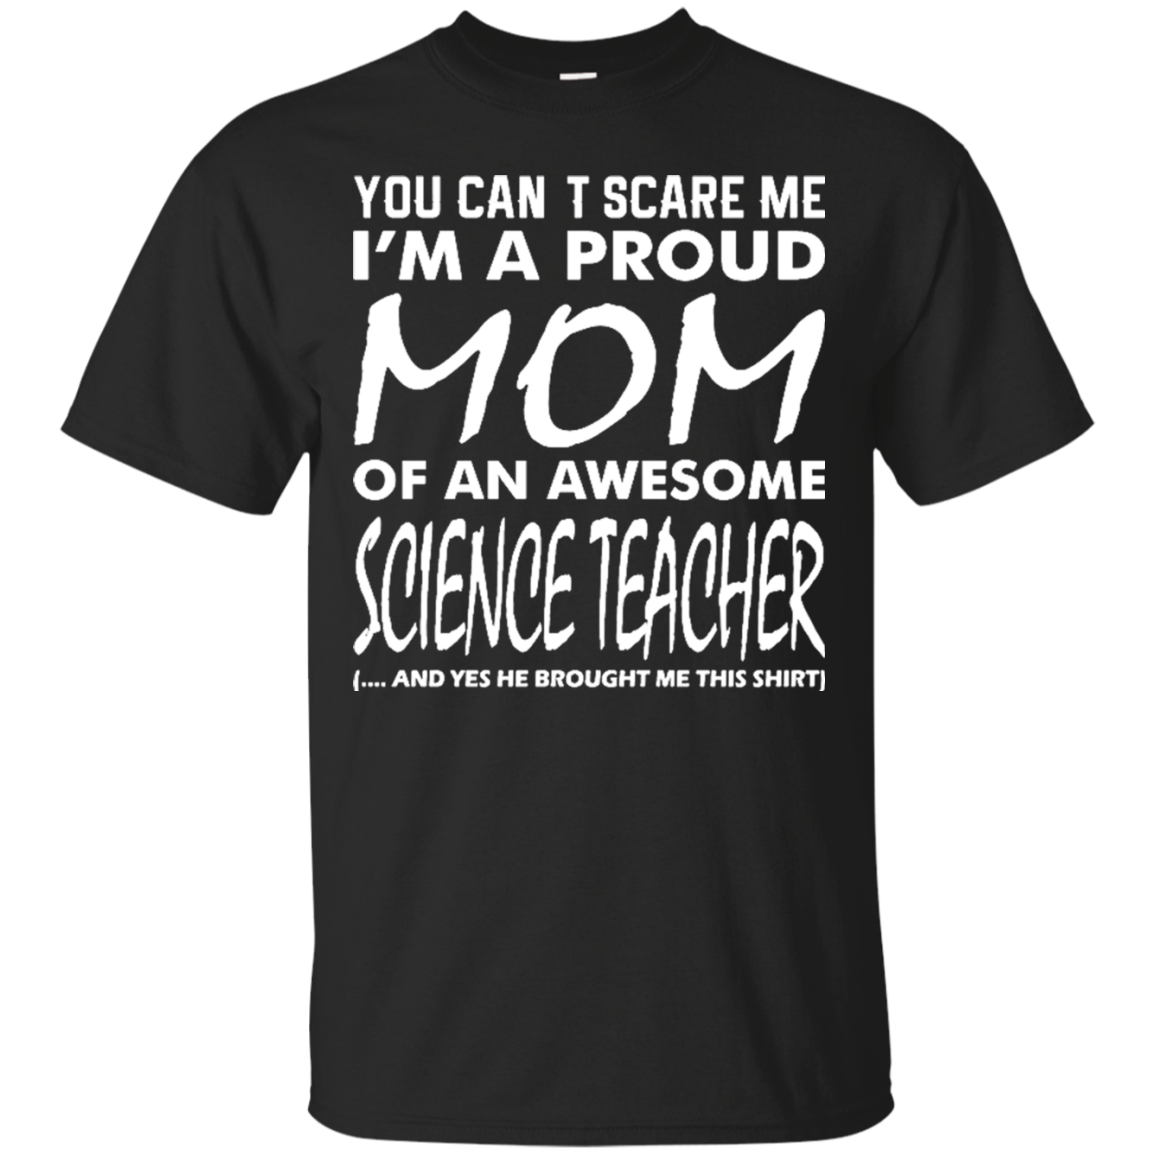 Cant scare me proud mom awesome science teacher t shirt Men